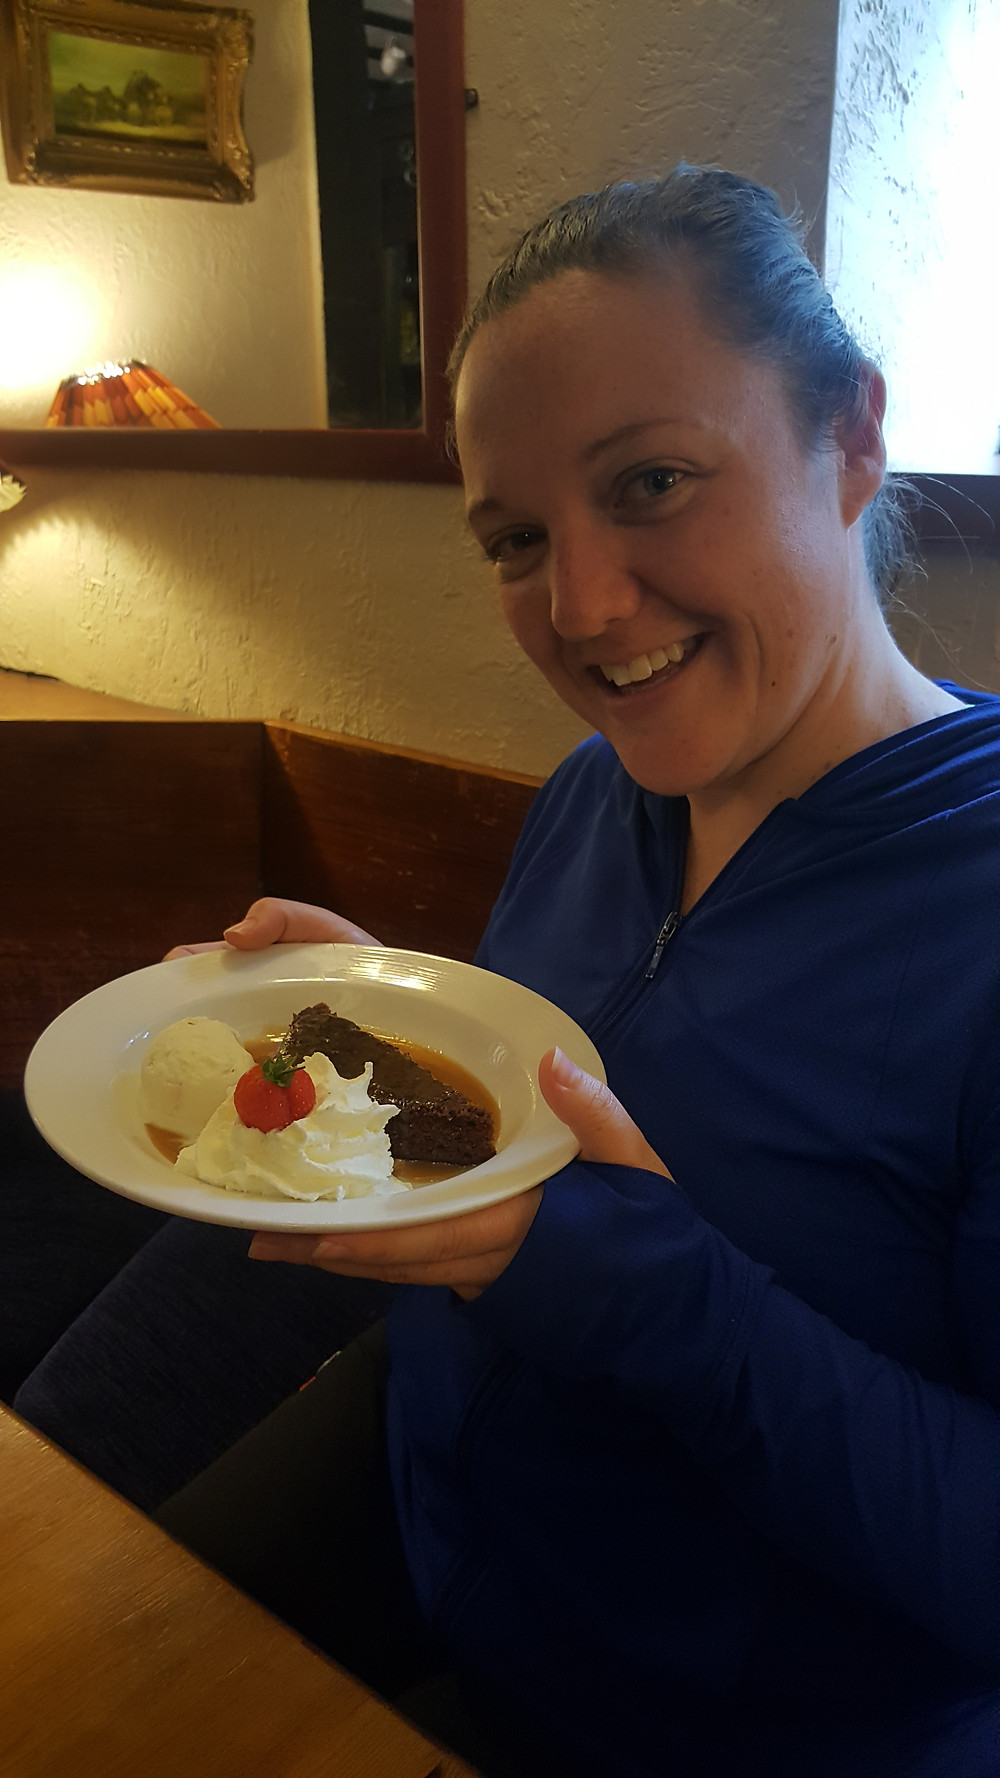 chowing down on some sticky toffee pudding, Tyn-y-coed, Wales - Life Itinerant